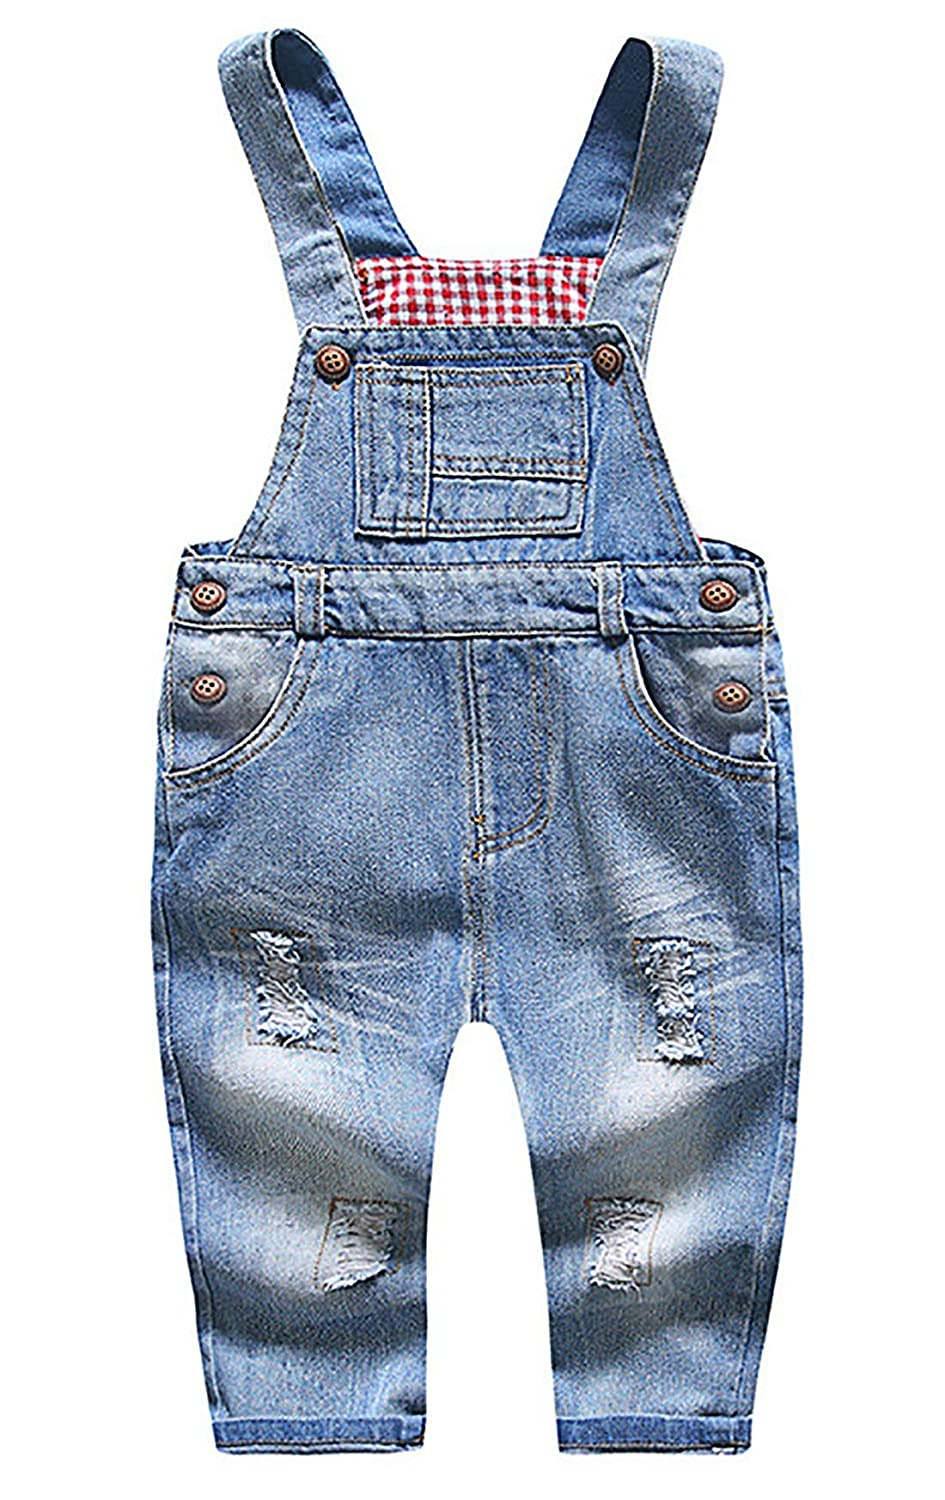 FEOYA Little Boys Girls Dungarees Denim Jeans Bib Overalls Jumpsuits for Babys